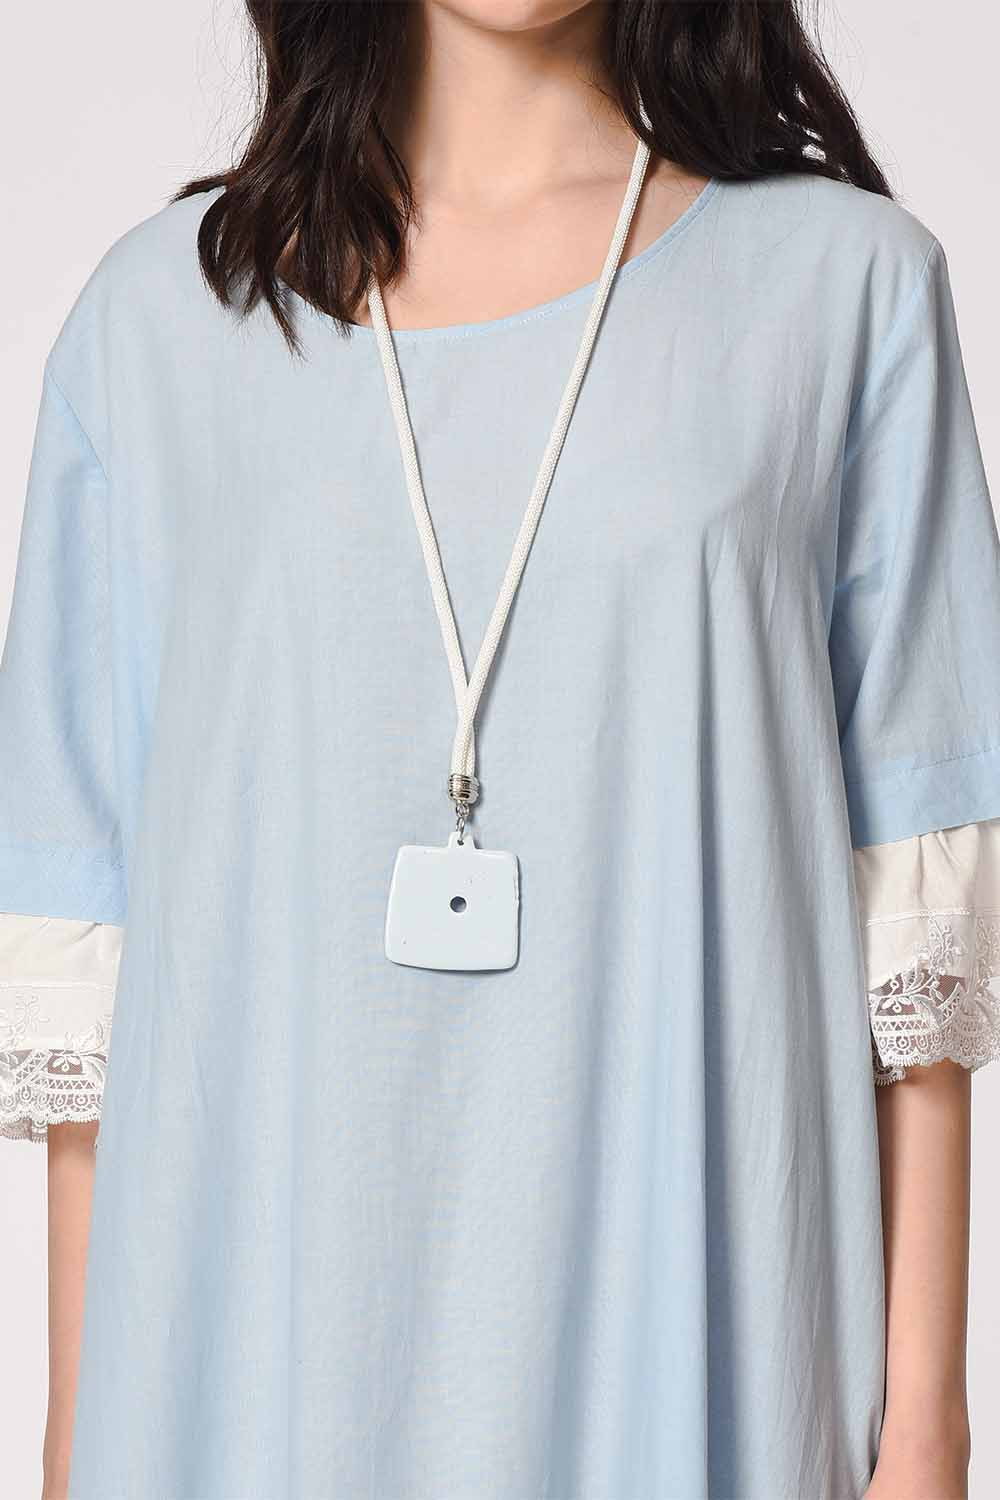 MIZALLE Necklace Detailed Bohemian Dress (Light Blue) (1)